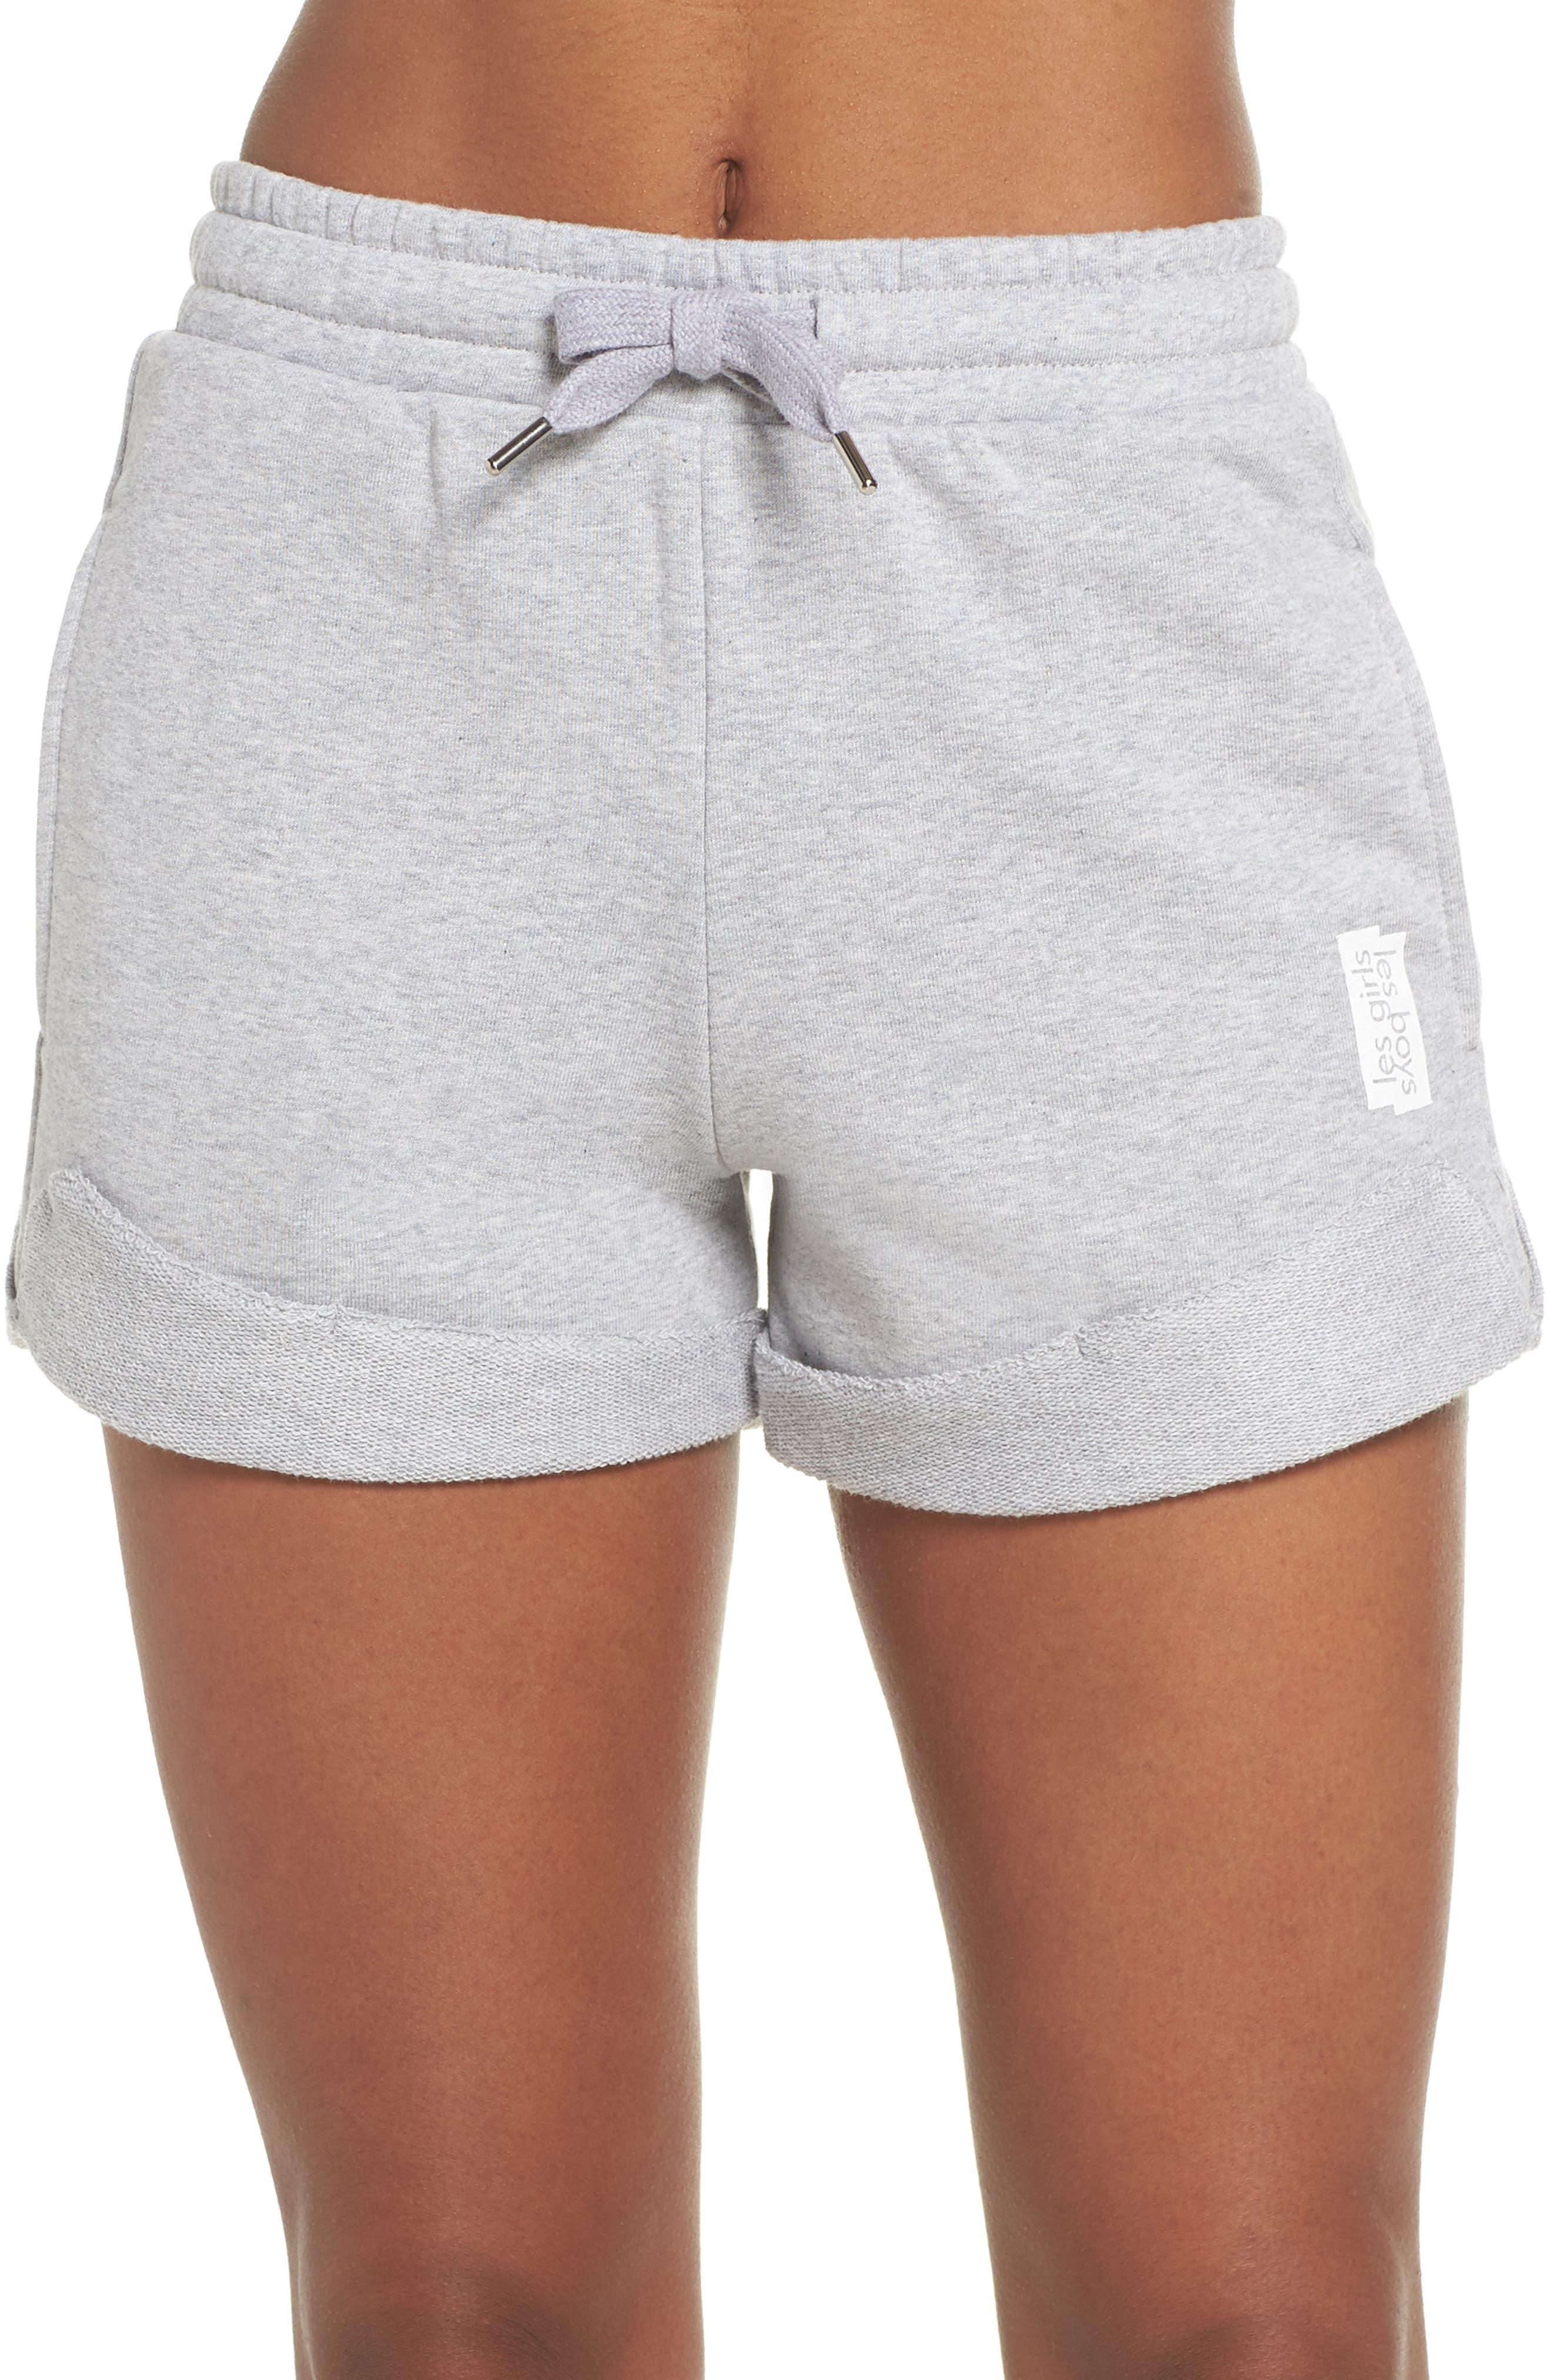 French Terry High Waist Shorts,                         Main,                         color, 020